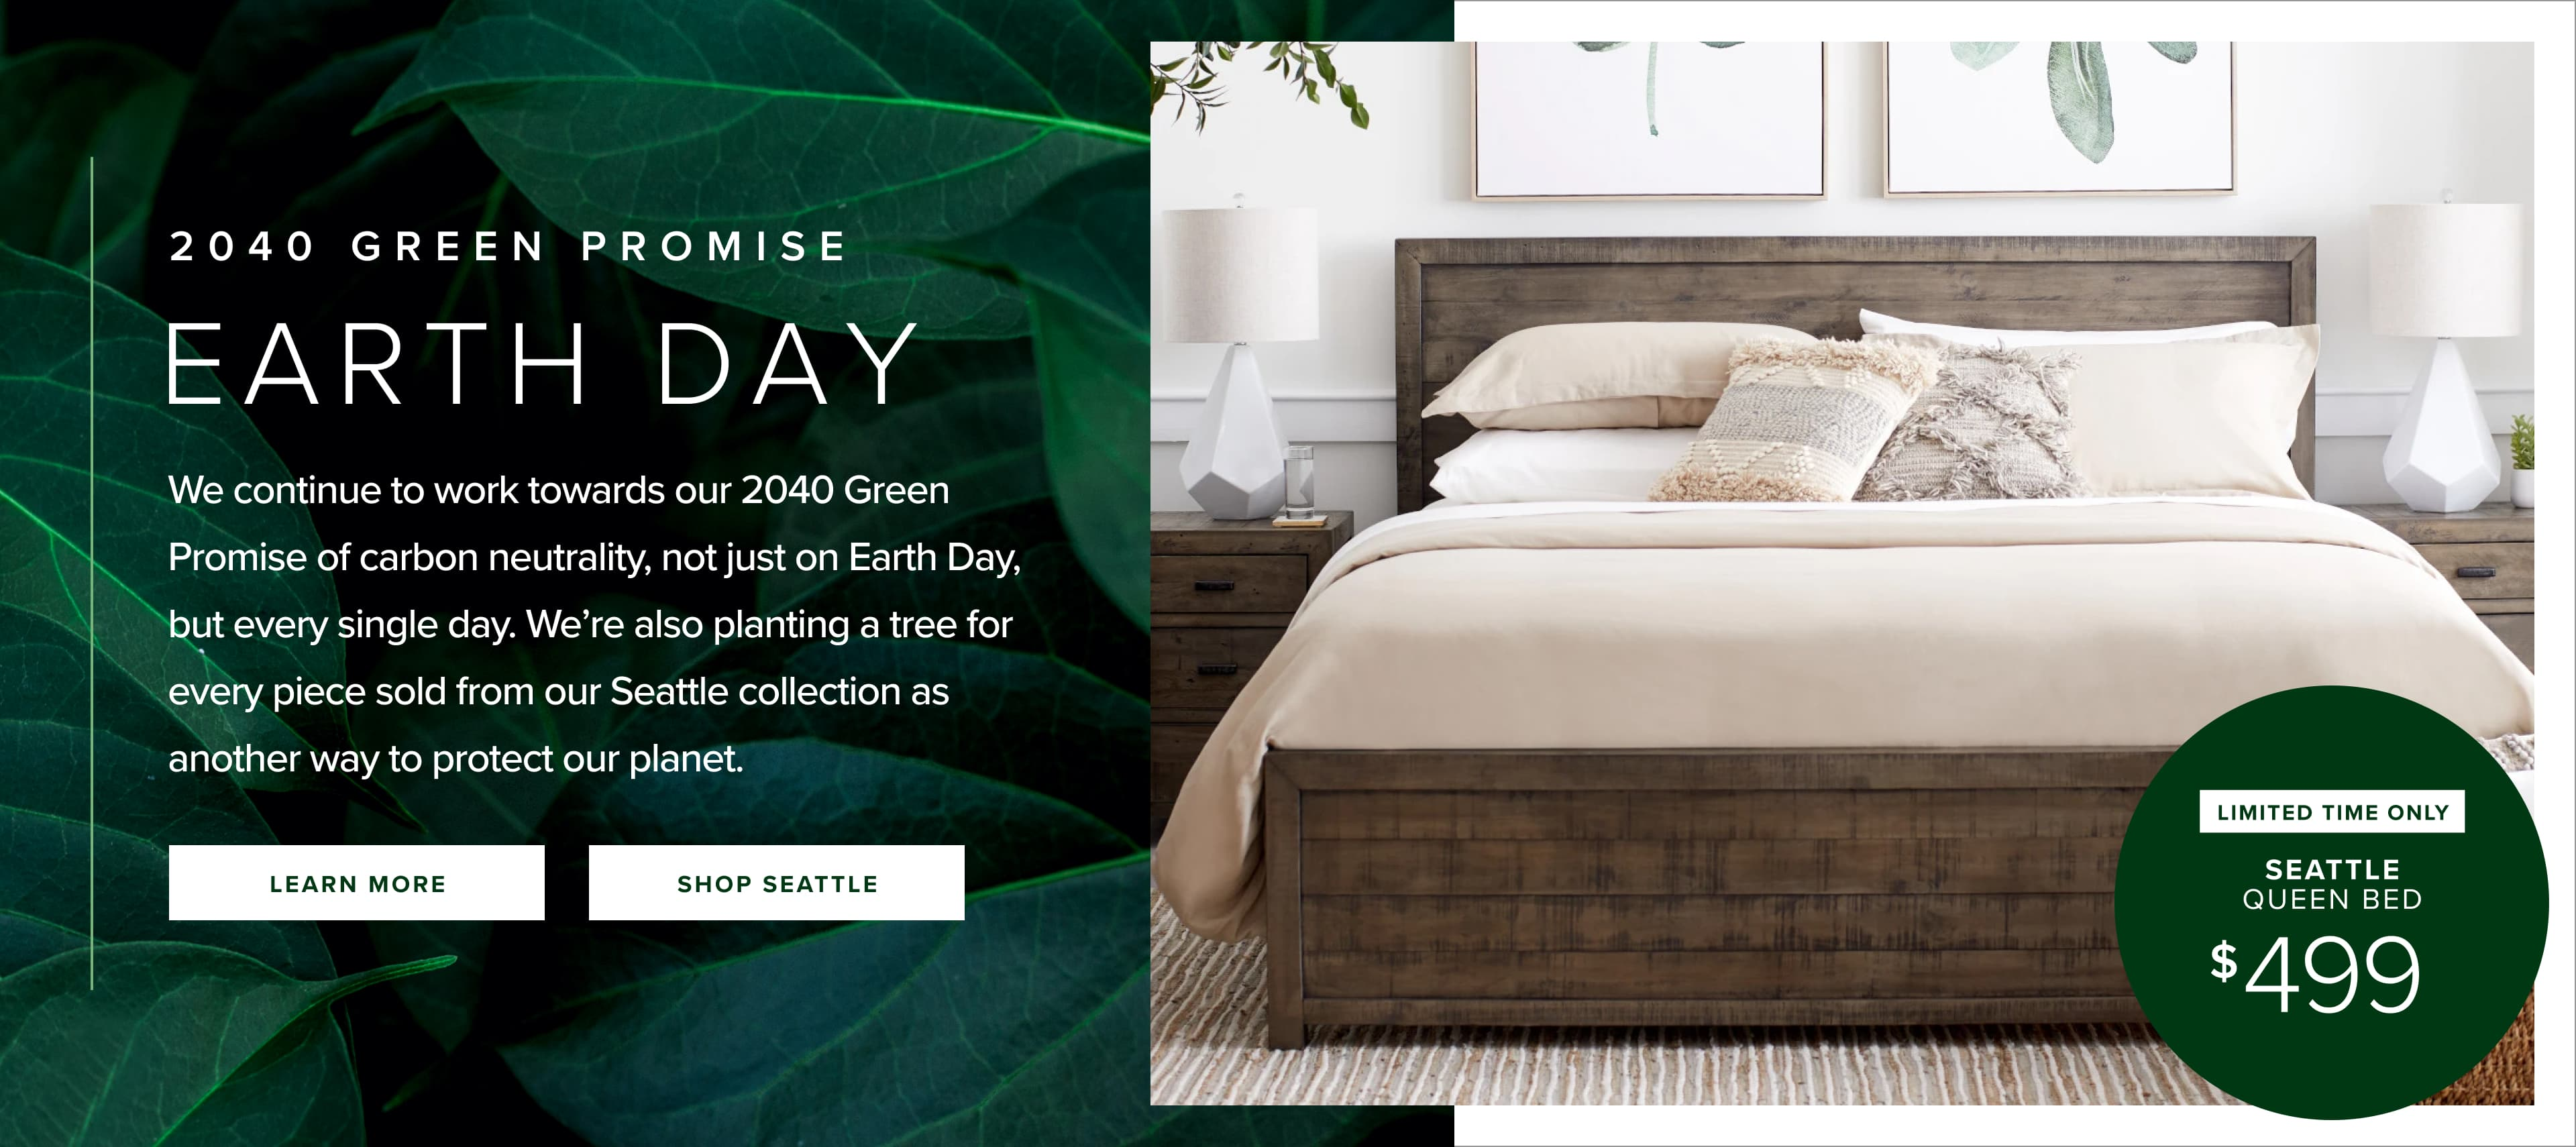 2040 Green Promise. Earth Day. We continue to work towards our 2040 Green Promise of carbon neutrality, not just on Earth Day, but every single day. We're also planting a tree for every piece sold from our Seattle collection as another way to protect our planet. Click to learn more about our 2040 Green Promise.  Click to shop Seattle Collection.